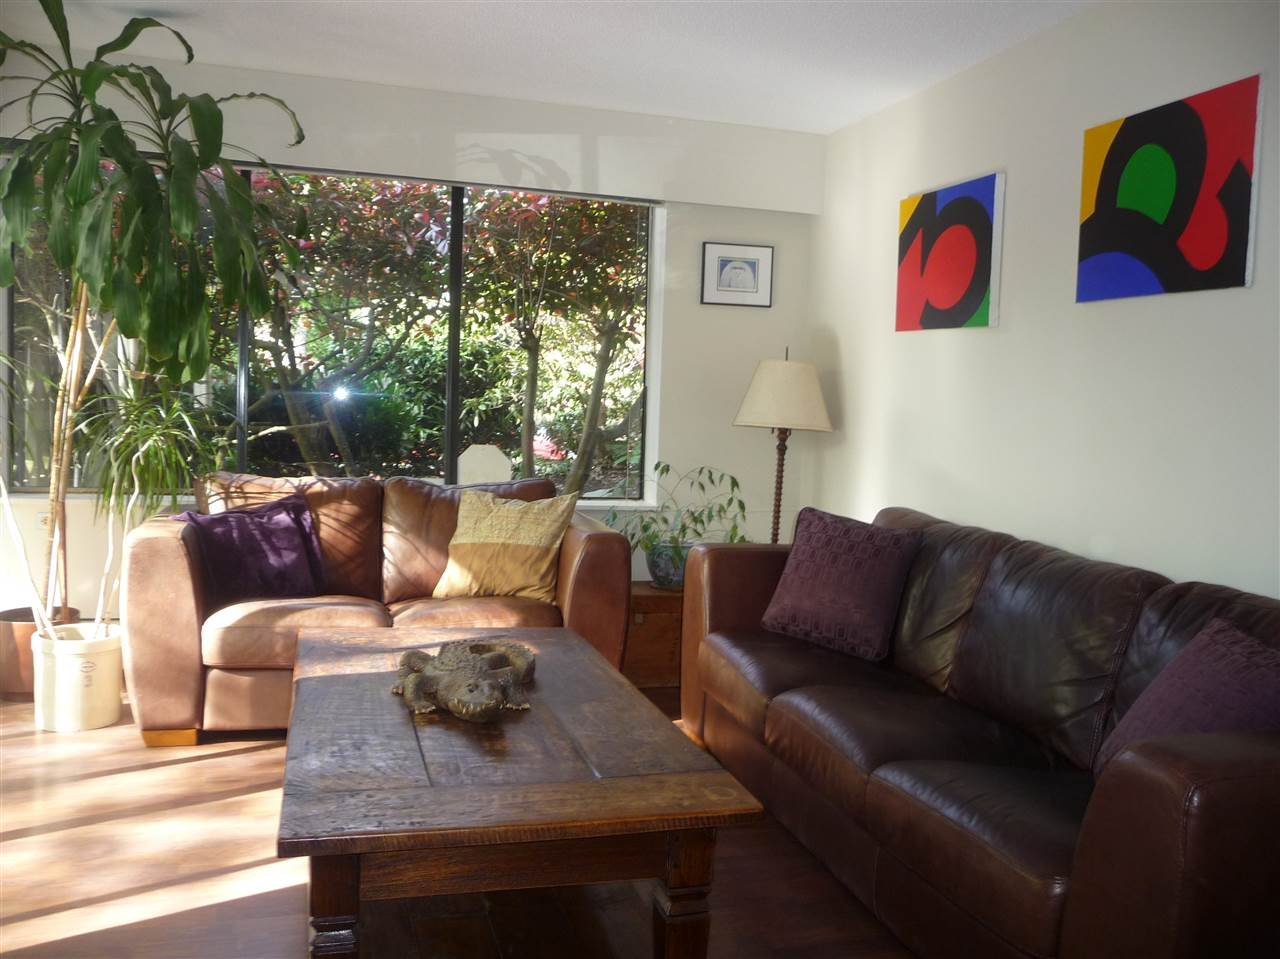 Photo 7: 103 2910 ONTARIO STREET in Vancouver: Mount Pleasant VE Condo for sale (Vancouver East)  : MLS® # R2058838